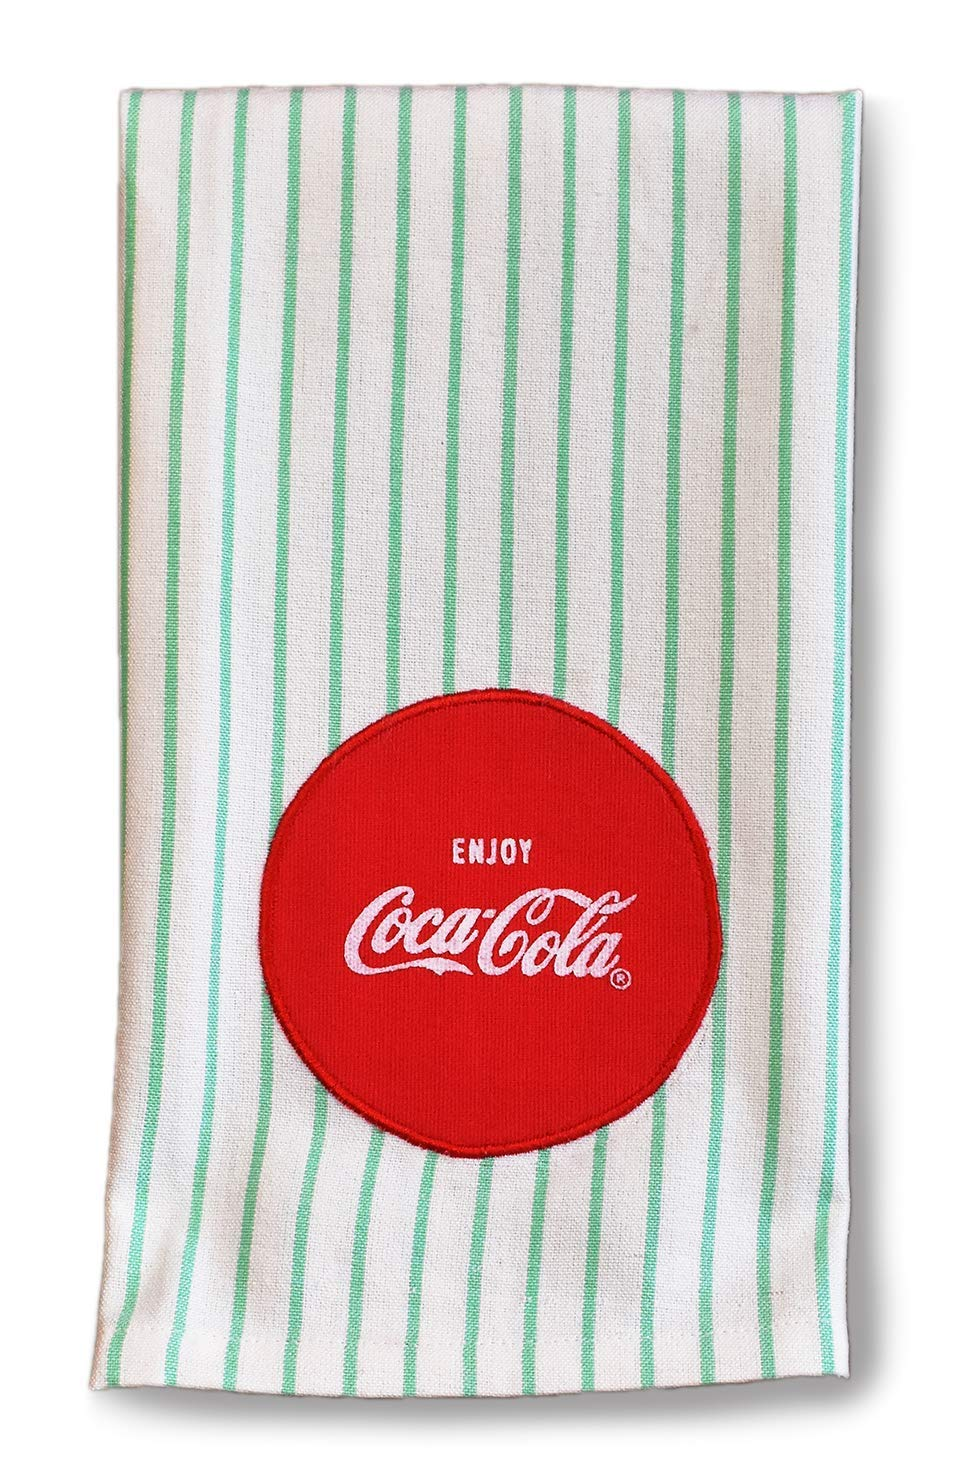 youngs Inc Coca Cola Mint Green Tea Towel, Multi